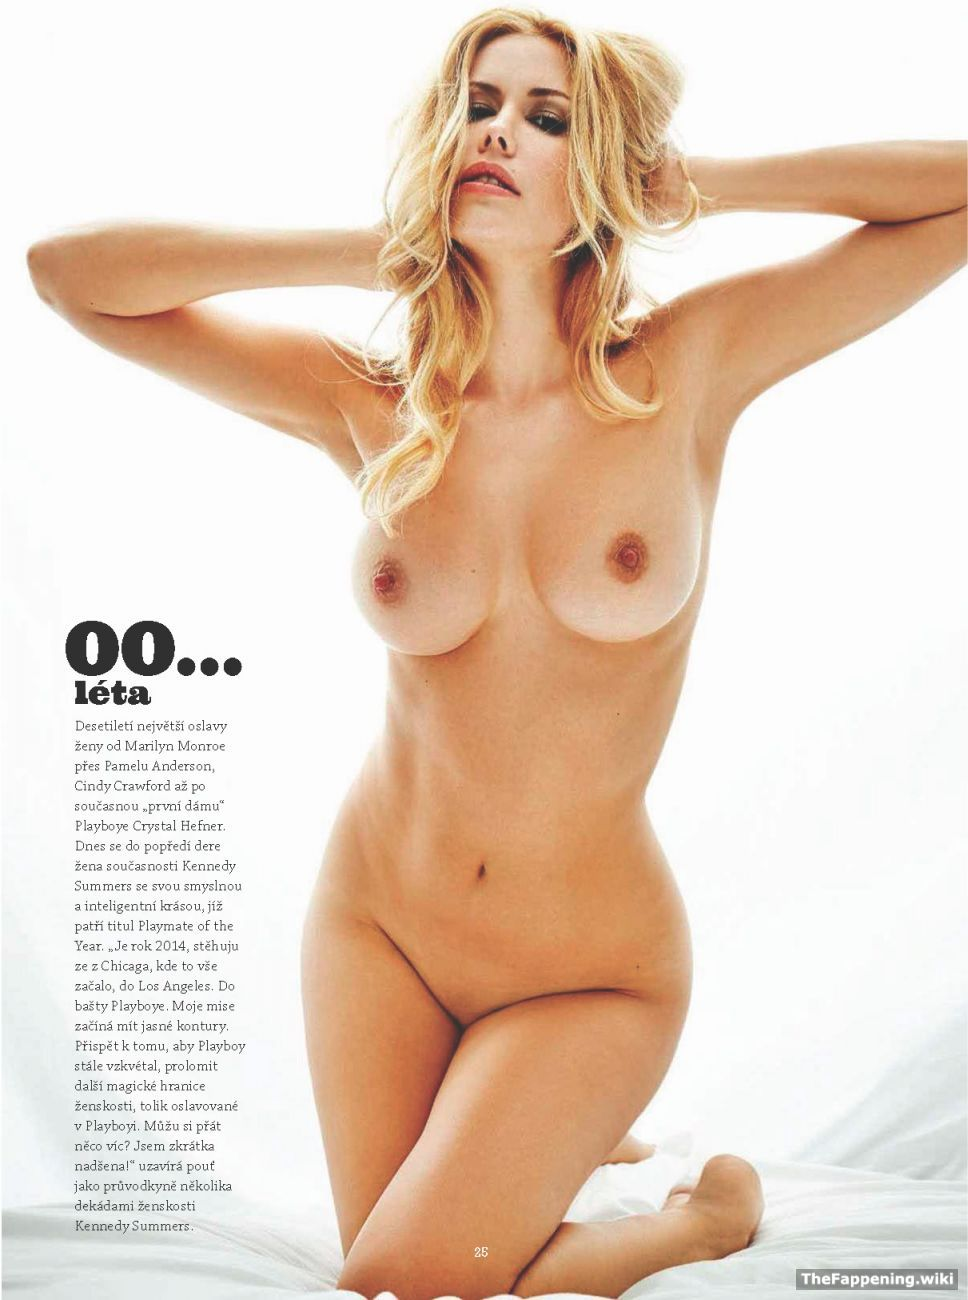 Kennedy Summers Nude Photos and Videos nudes (46 photos)